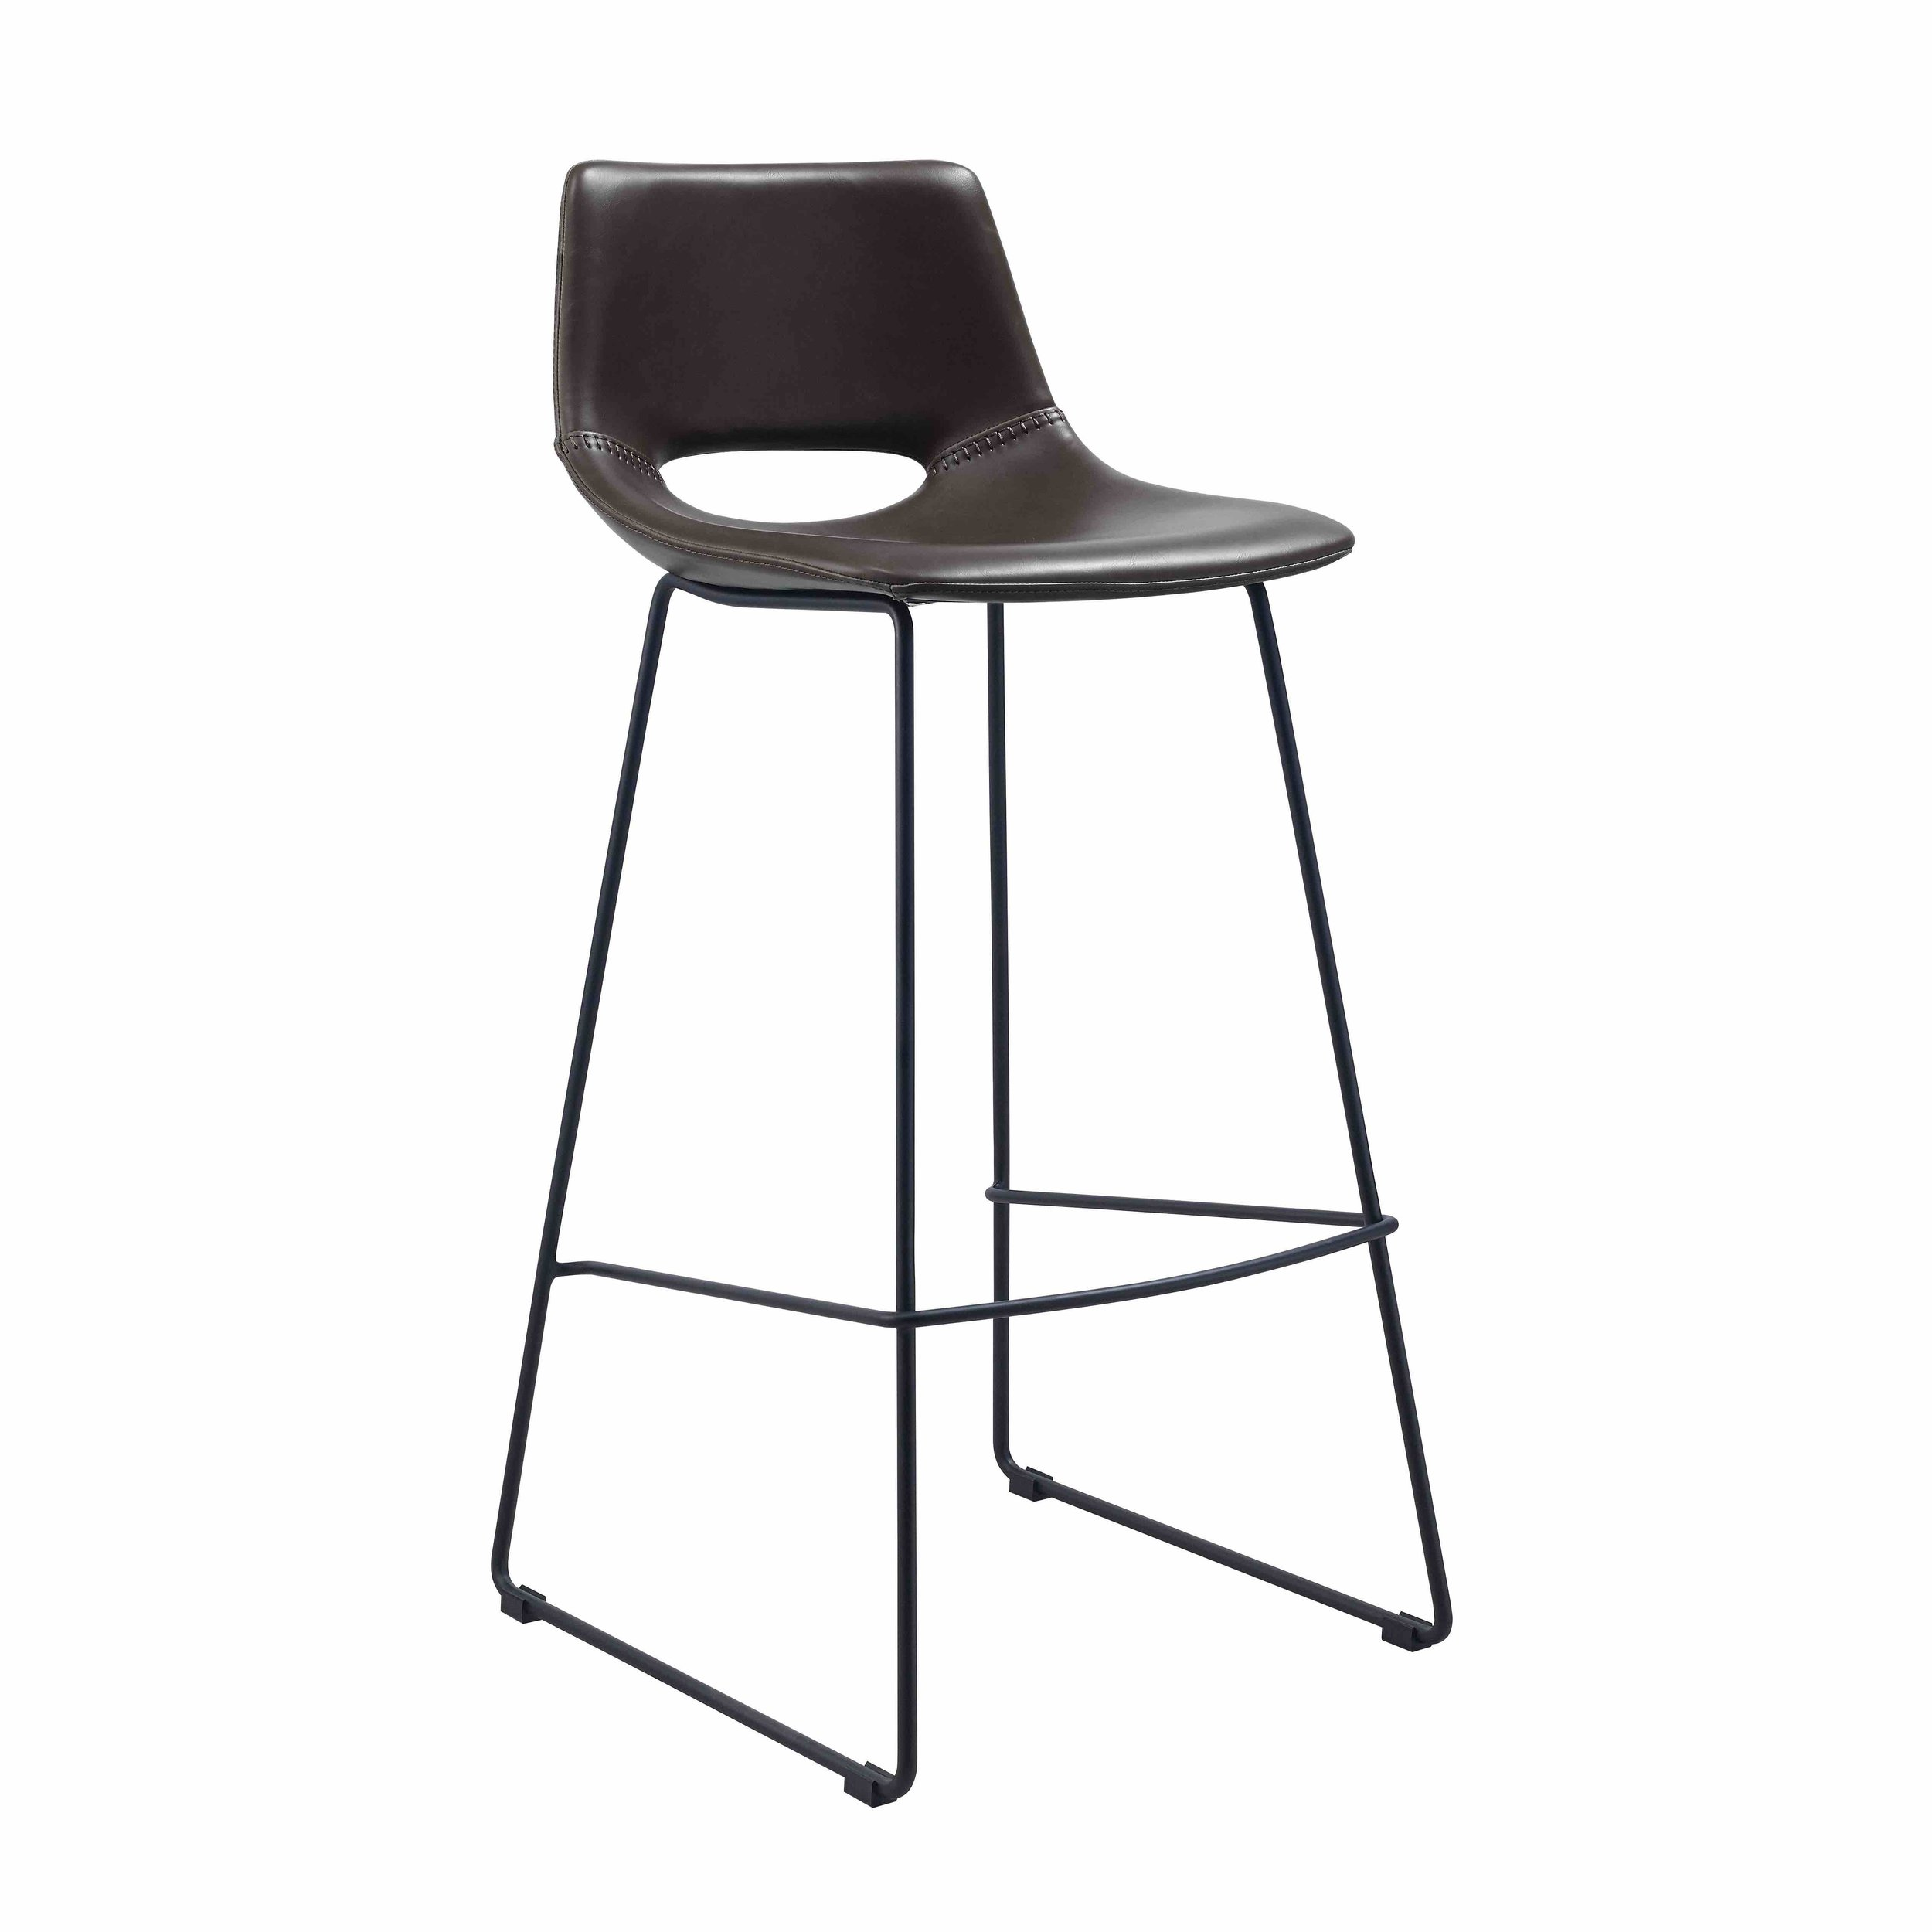 Ziggy Counter Height Stool